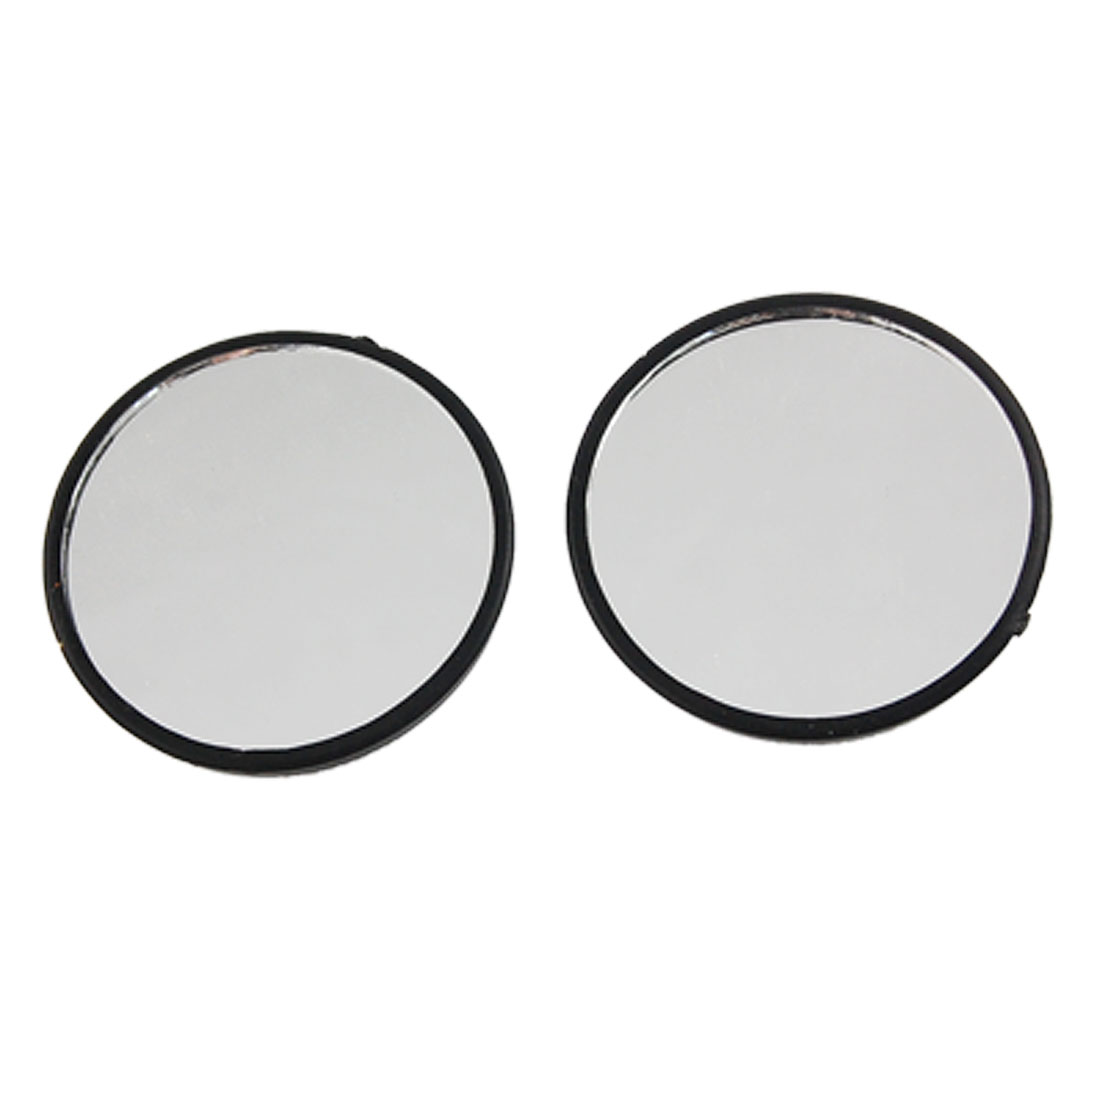 "2 Pcs 2"" Round Stick-on Rear View Blind Spot Mirror for Auto Car"